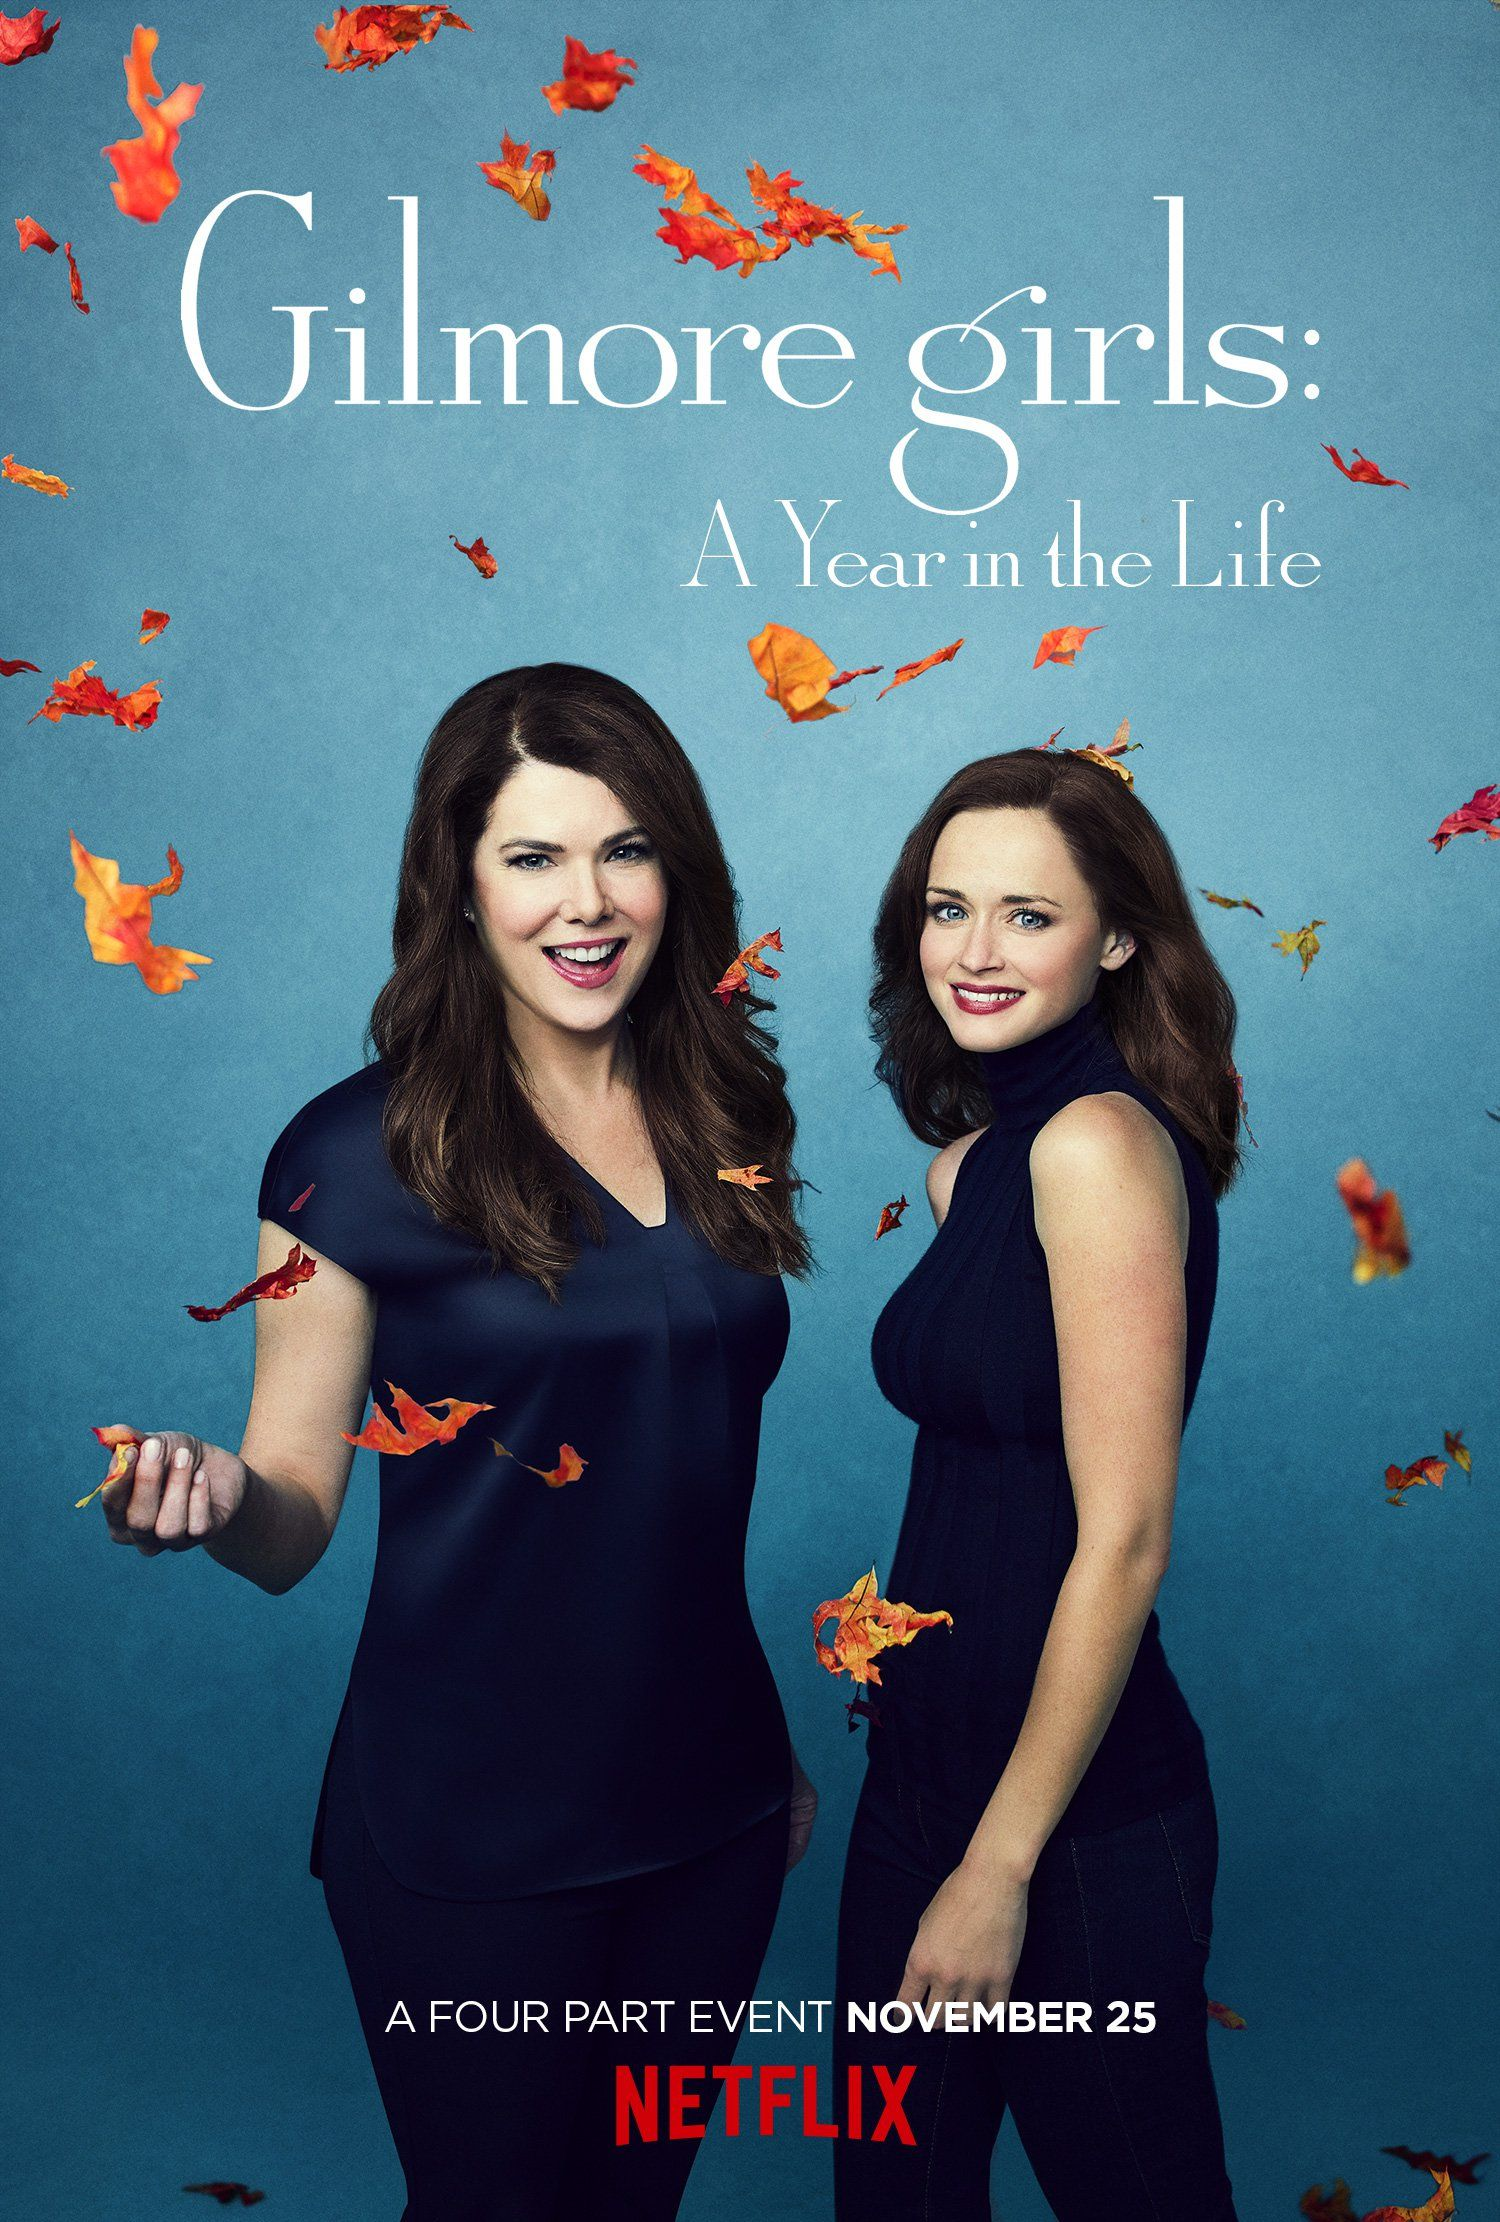 Every Single Poster We Have For Netflix\'s Gilmore Girls Reboot ...